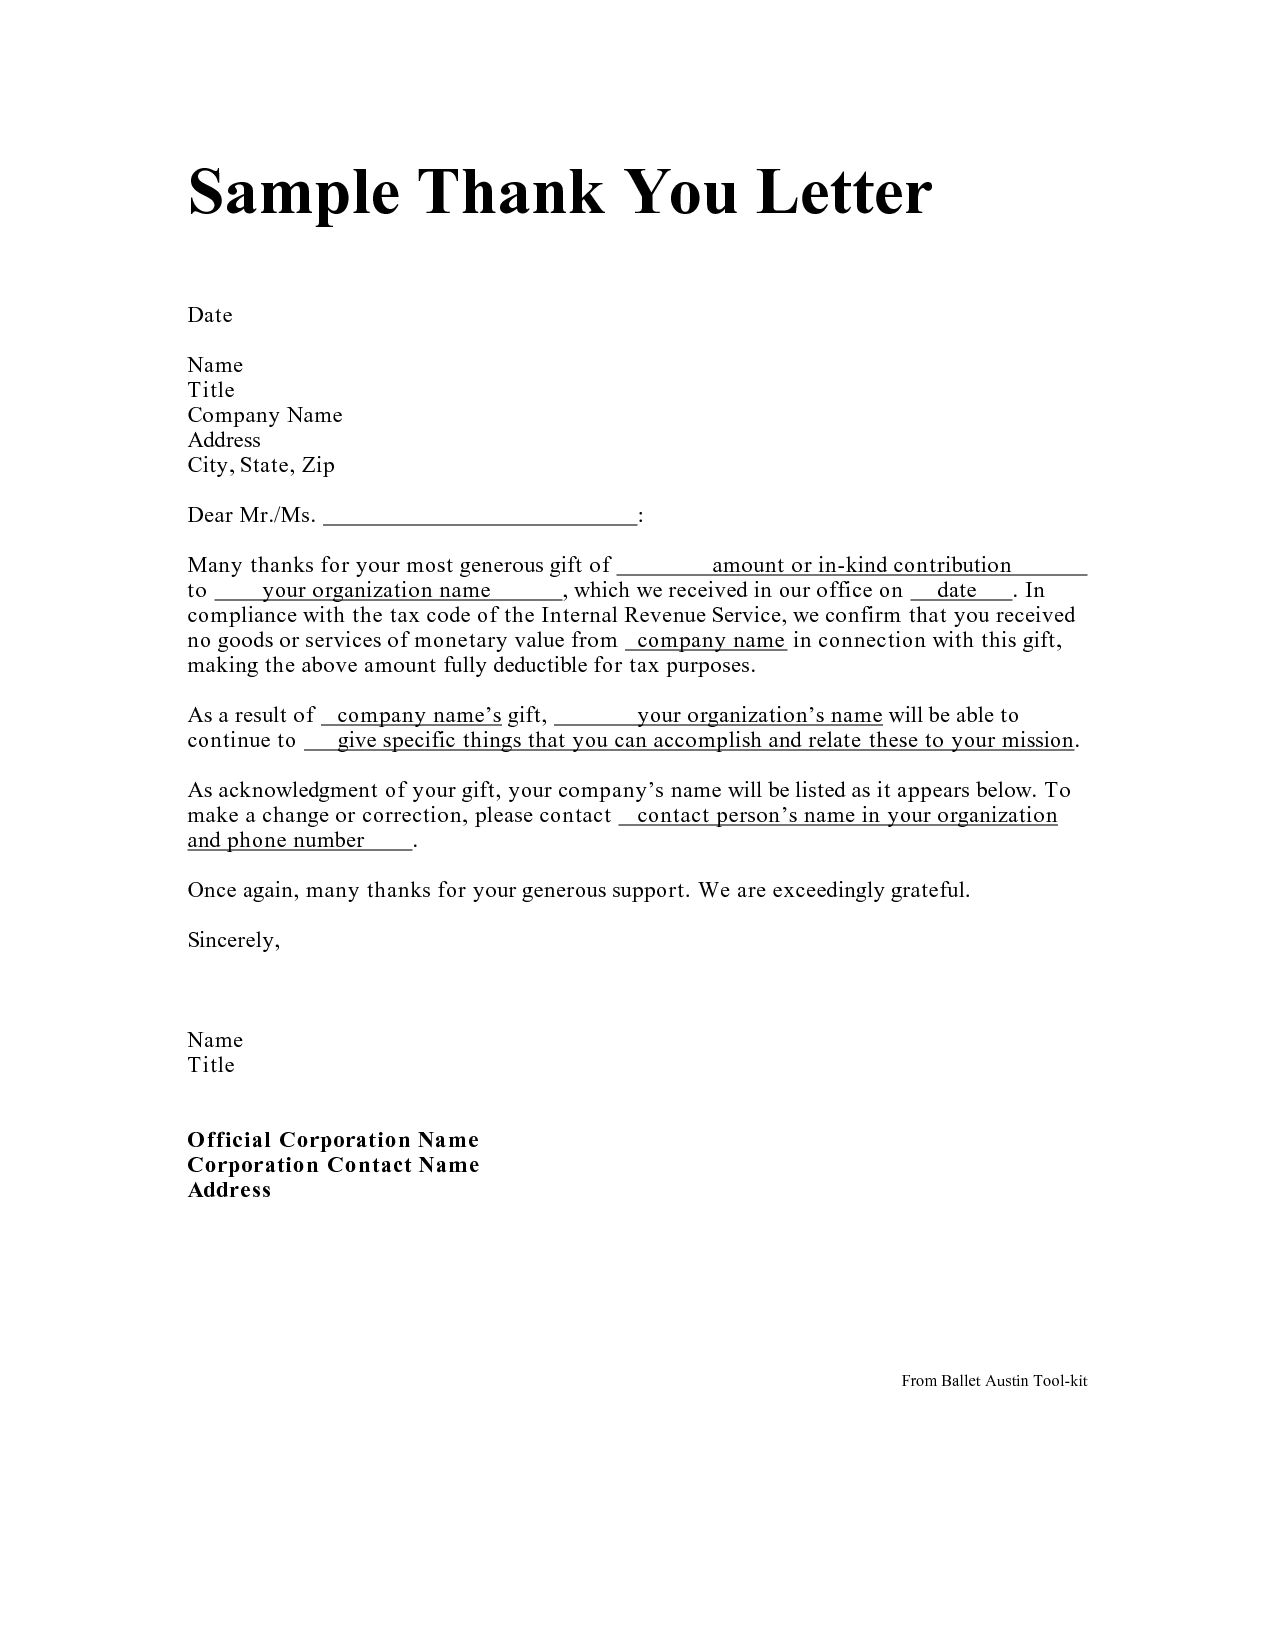 Personal Thank You Letter   Personal Thank You Letter Samples, Writing Thank  You Notes,